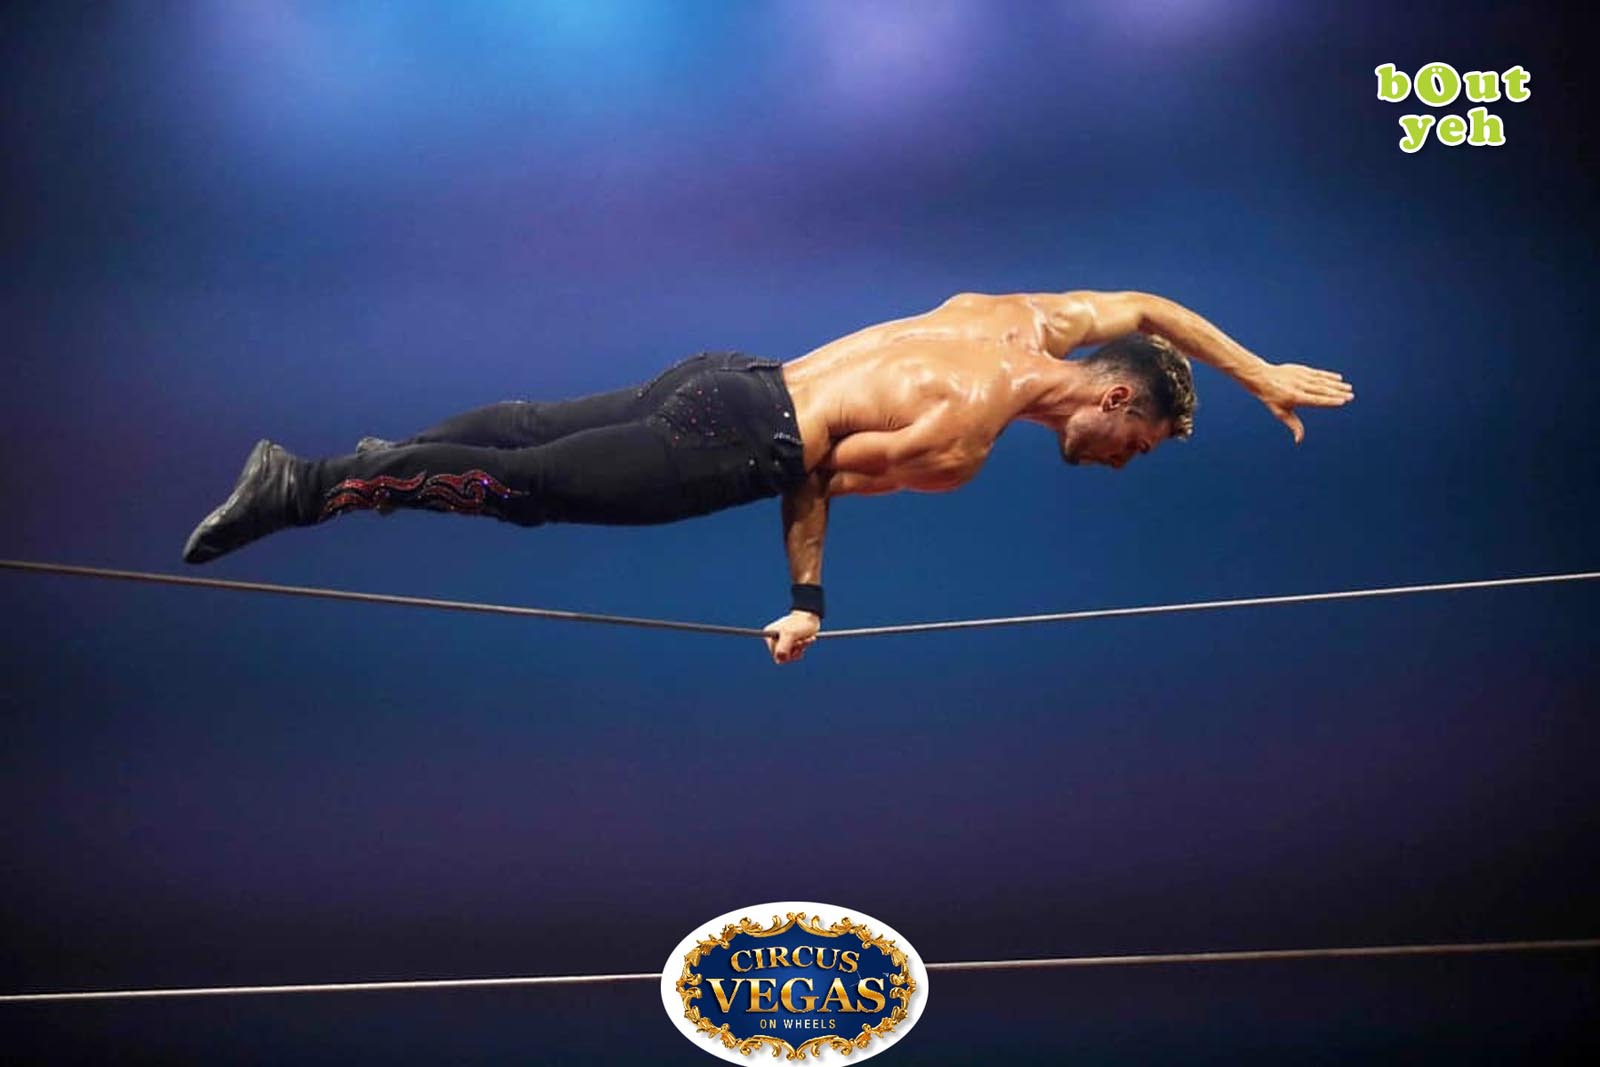 Social Media Marketing Consultants Belfast - Circus Vegas campaign photo of high wire performer. Photo by Bout Yeh used in a Social Media Marketing campaign across Bout Yeh's Social Media platforms for Circus Vegas On Wheels Ireland